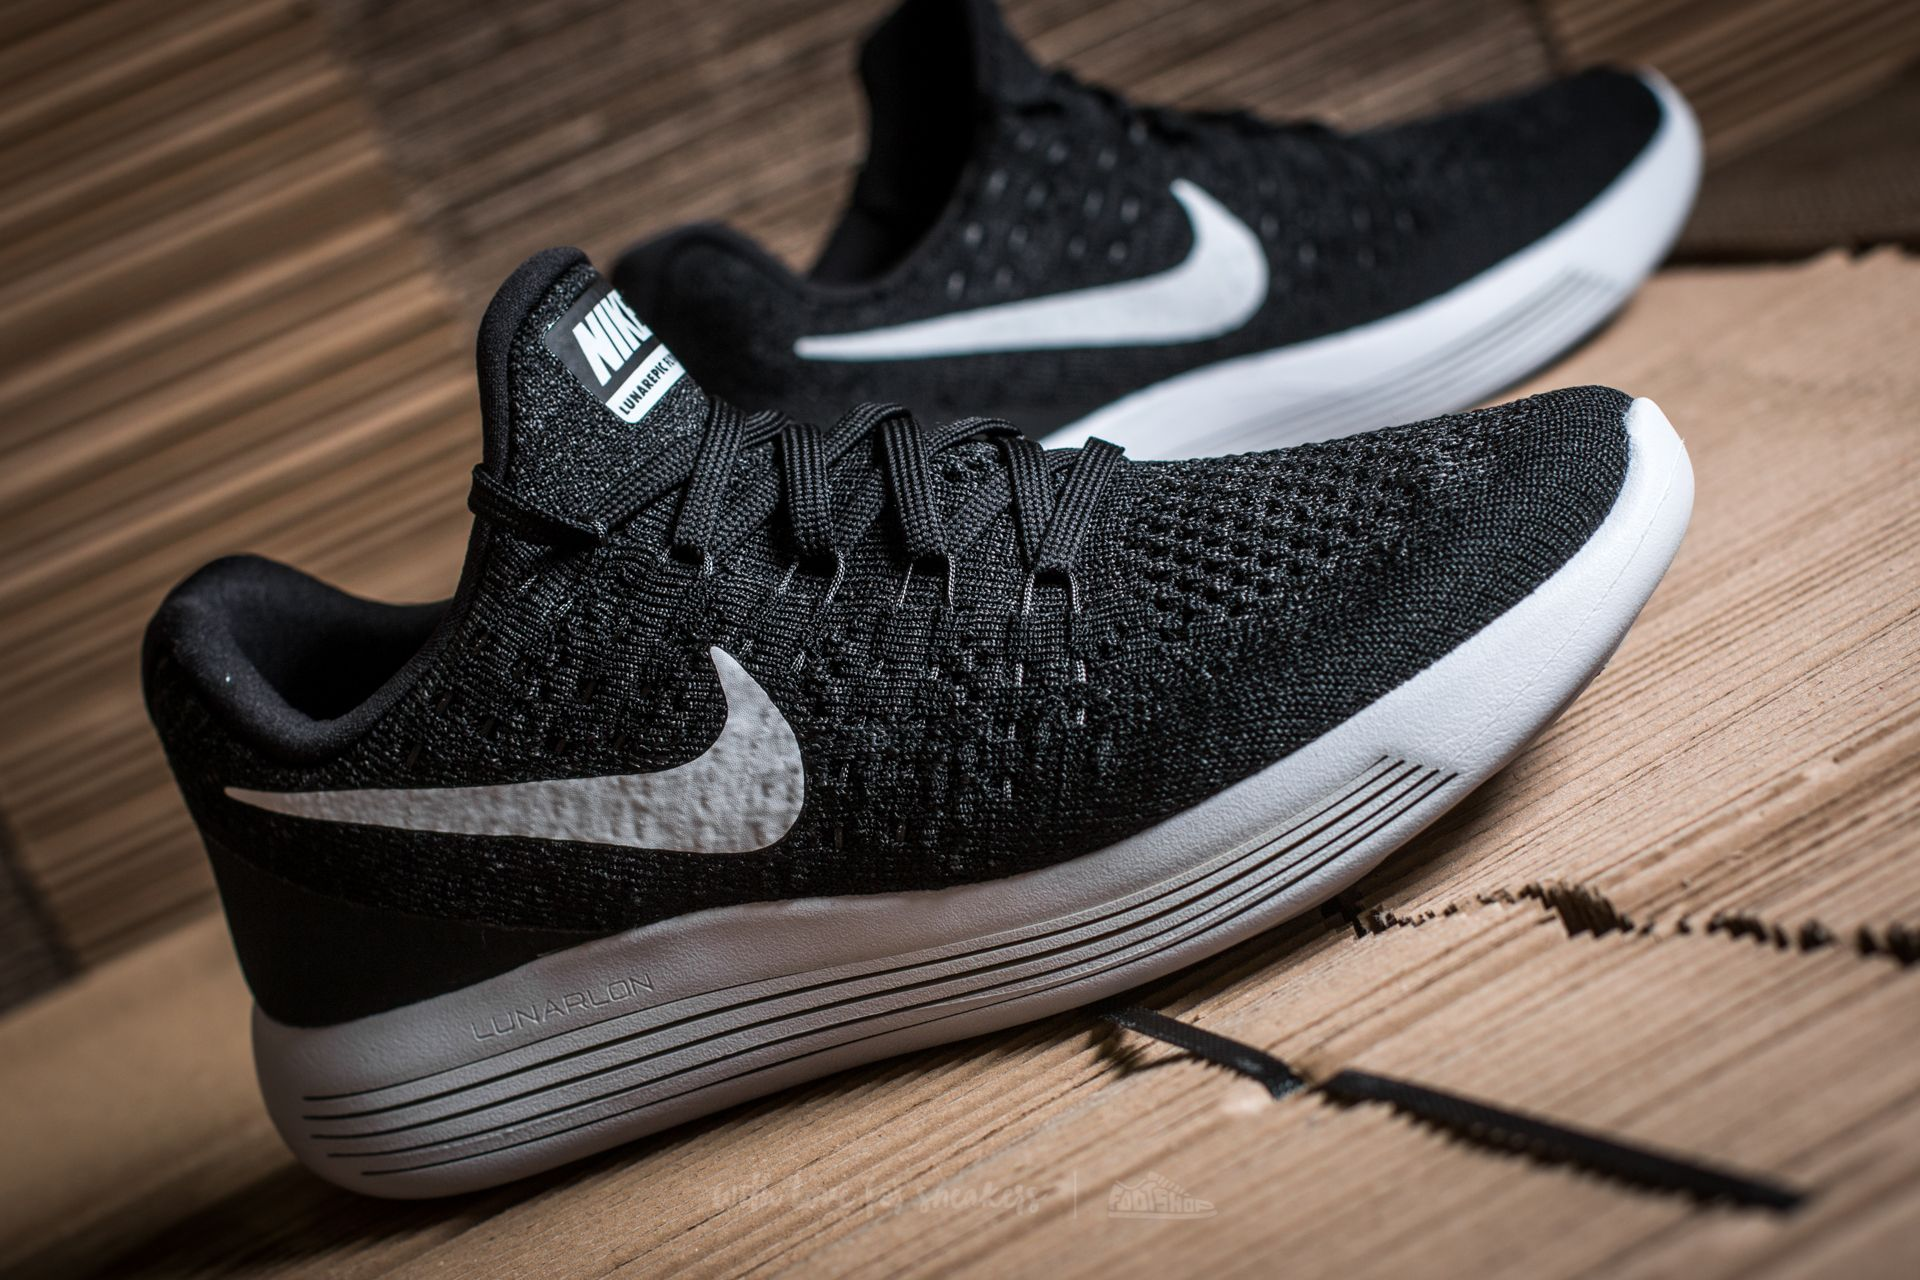 newest 78f65 3c22d NIke W Lunarepic Low Flyknit 2 Black/ White-Anthracite ...